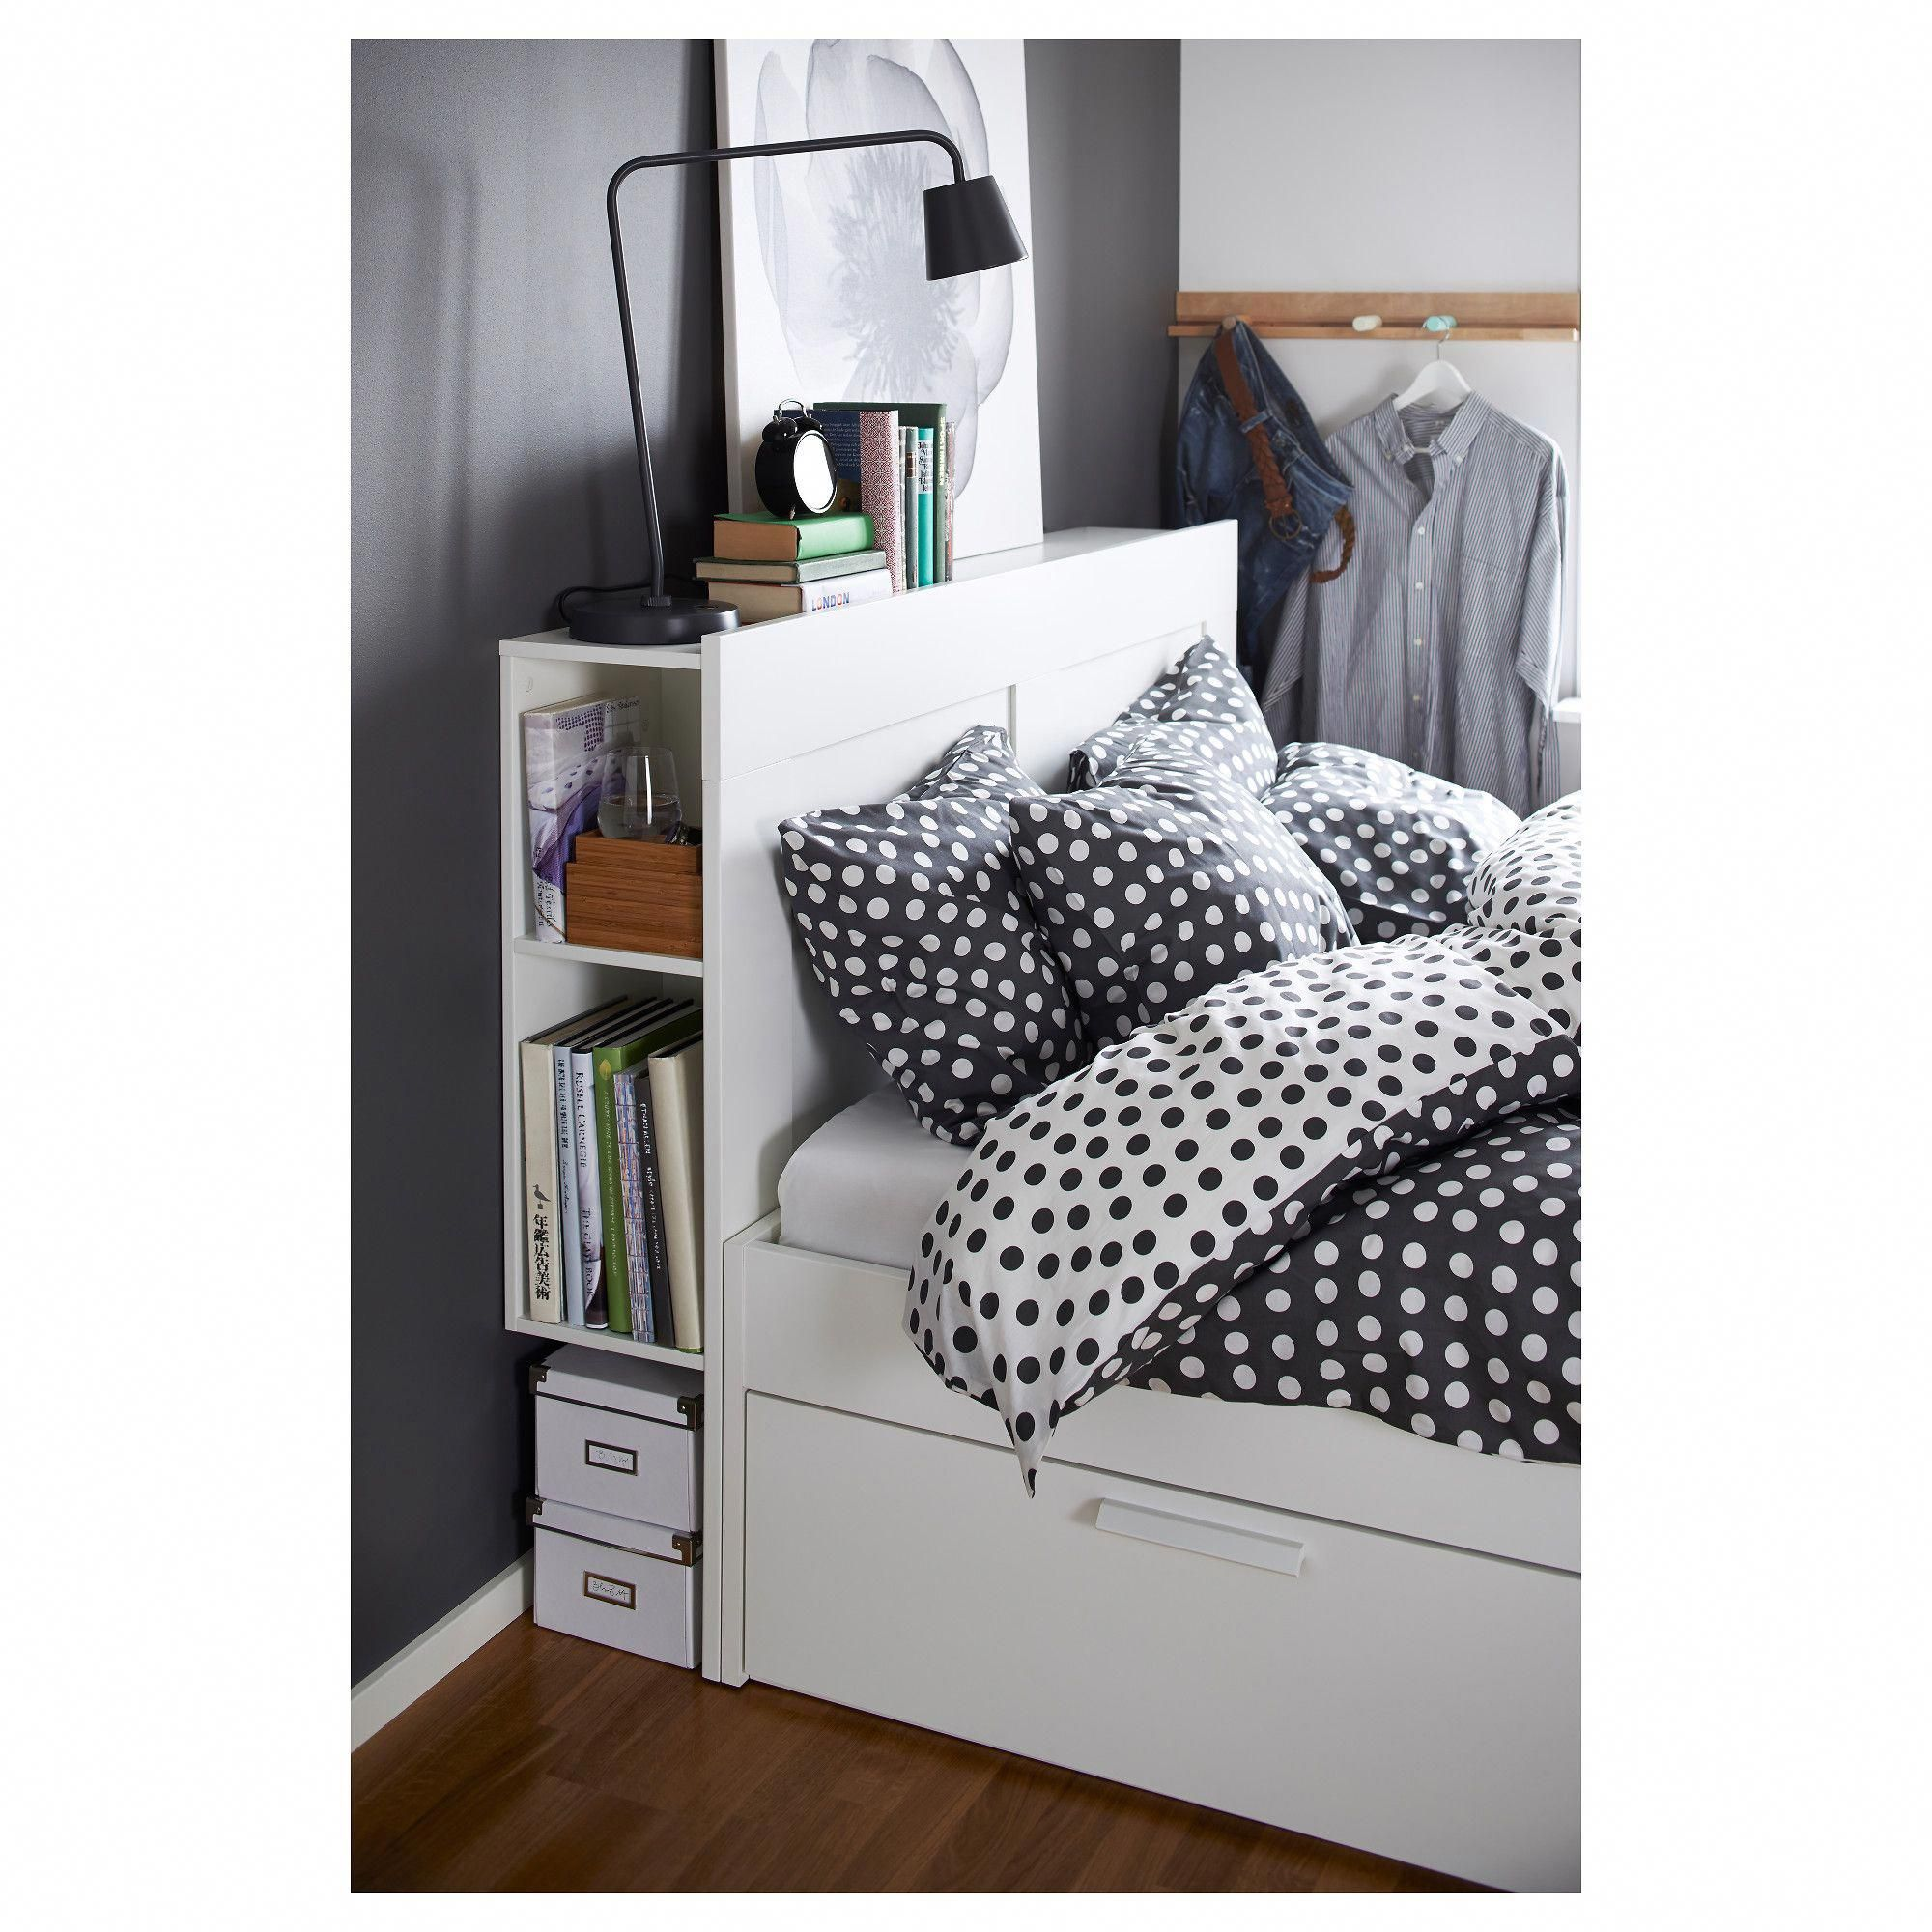 Ikea Brimnes Bed Frame With Storage Headboard Full The 4 Integrated Drawers Give You Extra Sto Bed Frame With Storage Headboard Storage Brimnes Bed